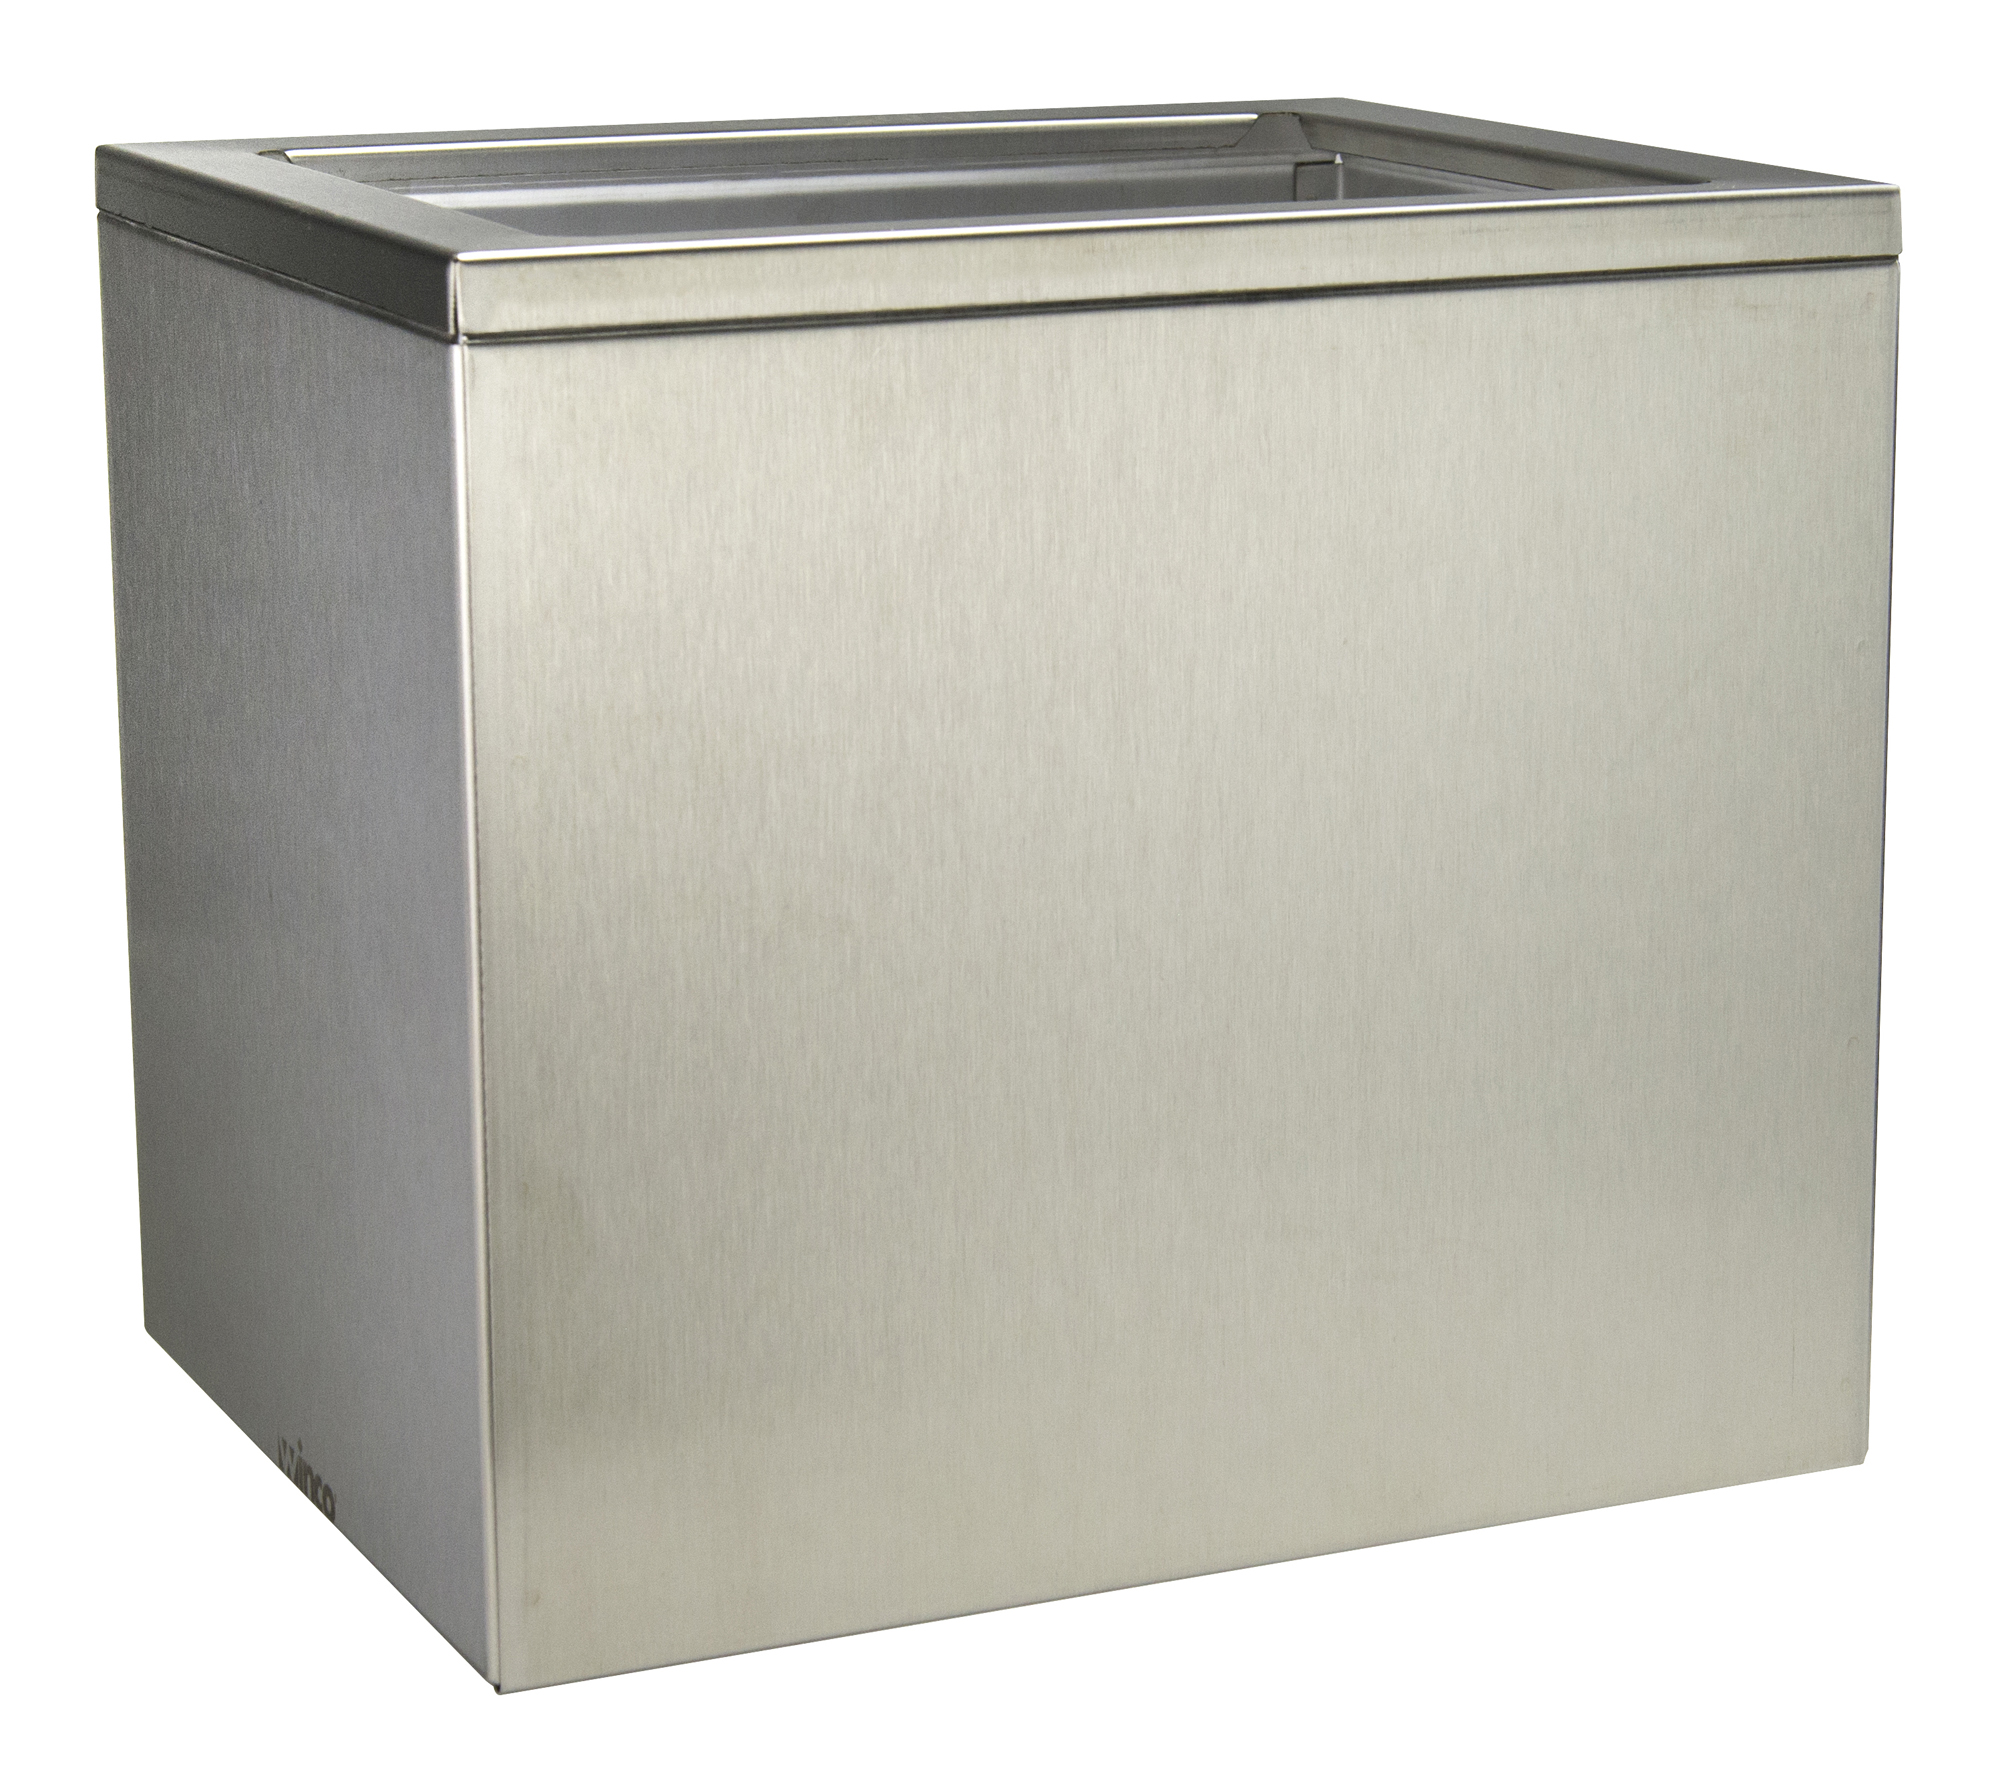 Winco PKTS-PT03 stainless steel container